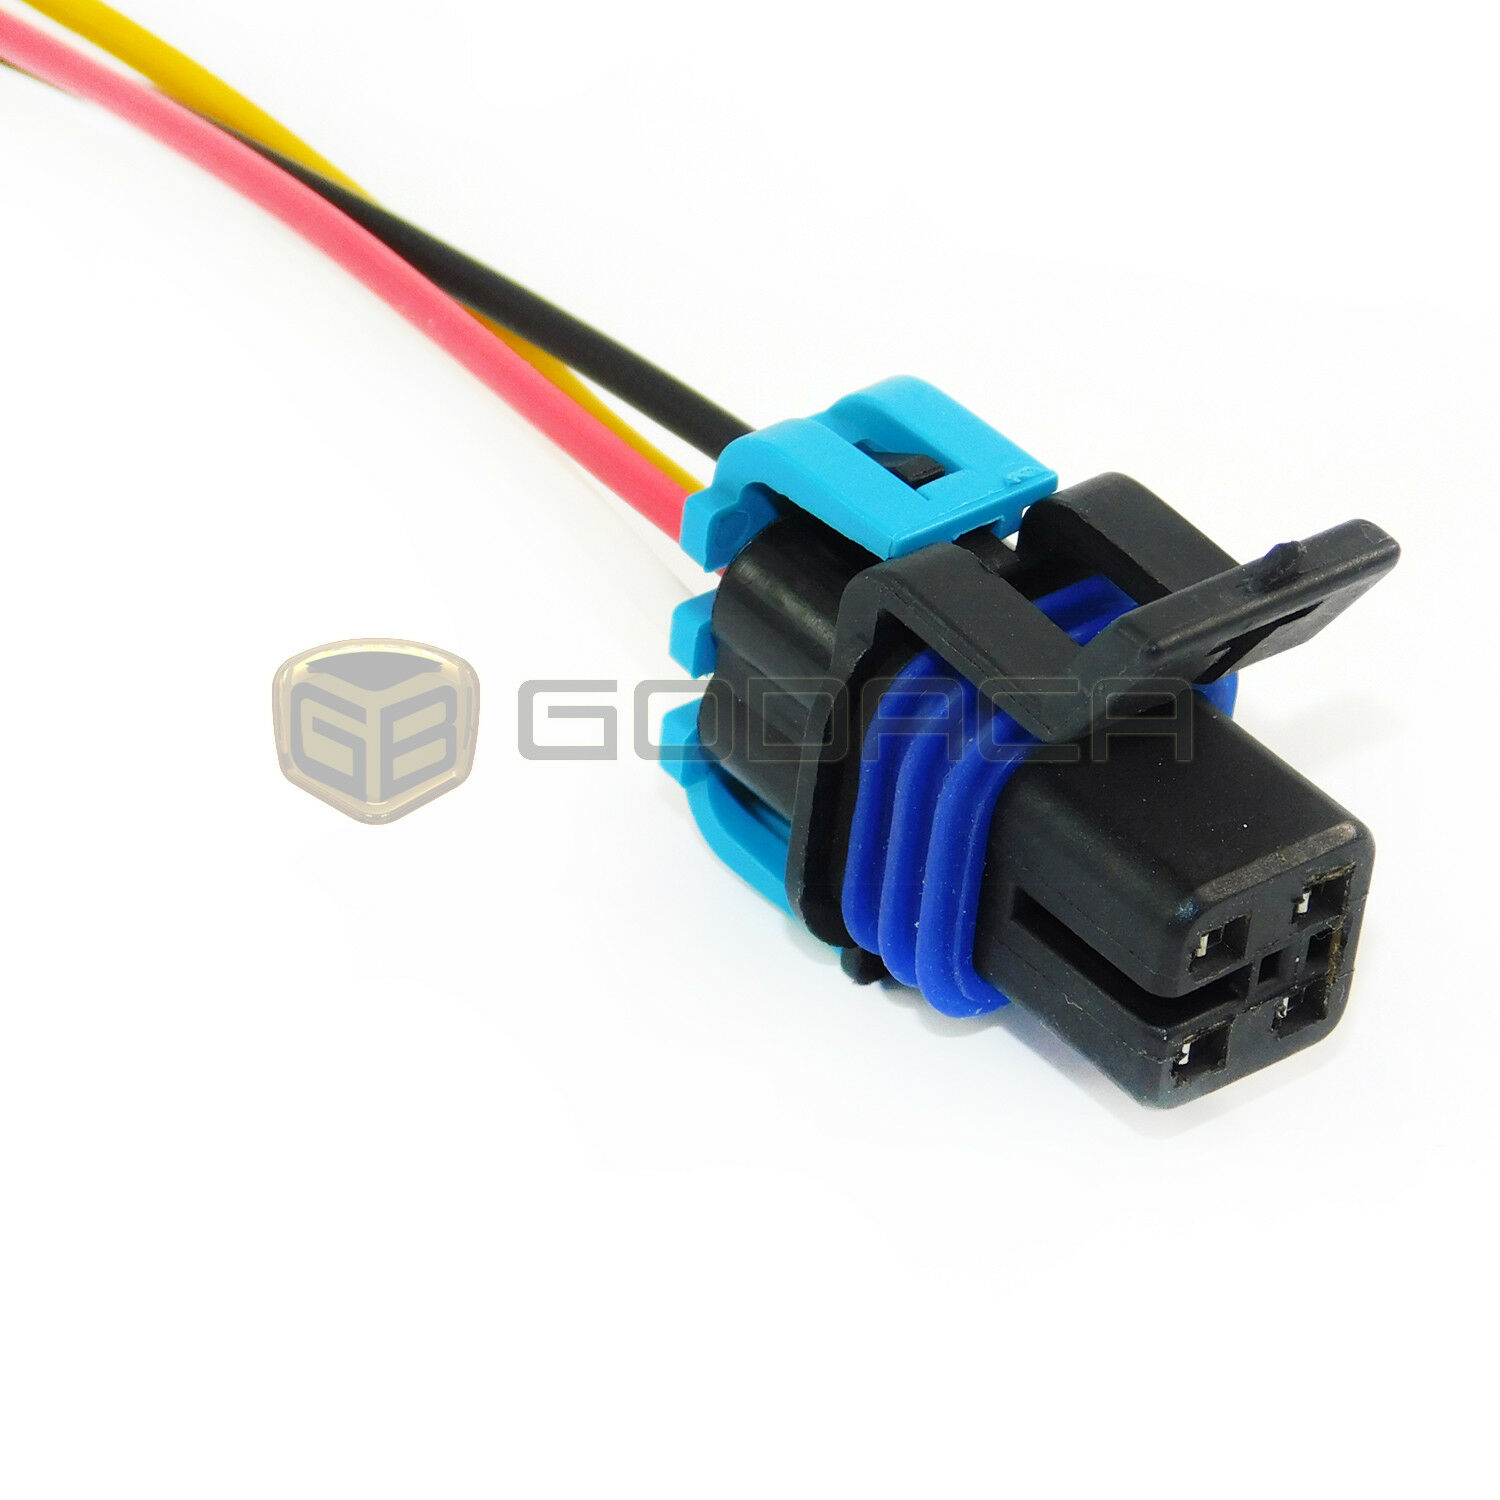 Connector For Fuel Pump 4 Way Female Wiring Harness Gm Chevrolet S10 Ebay 1 Of 2free Shipping